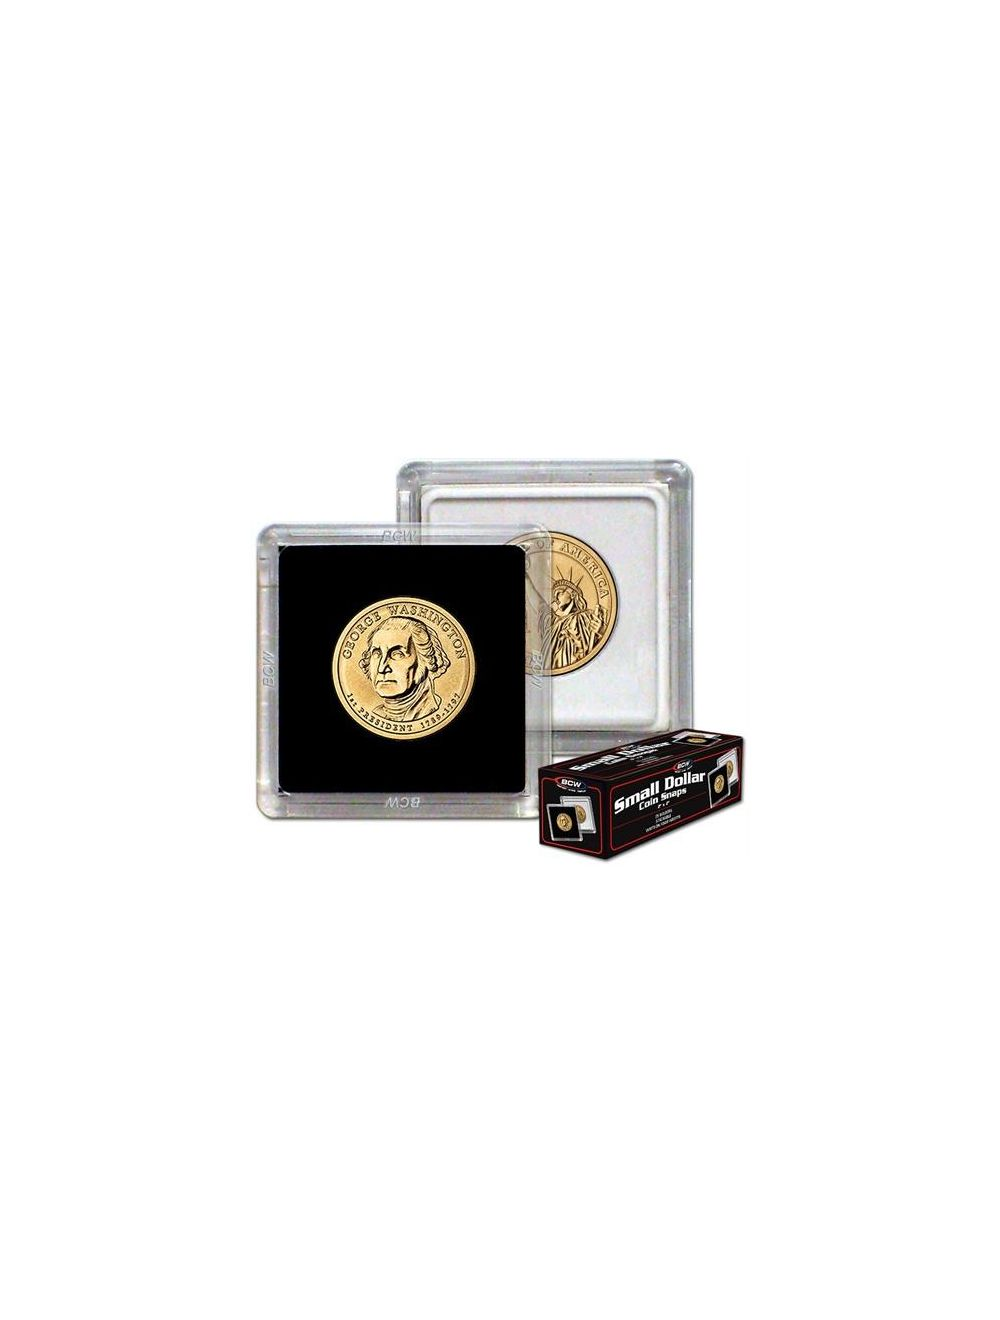 2x2 Coin Snap - Small Dollar - Black